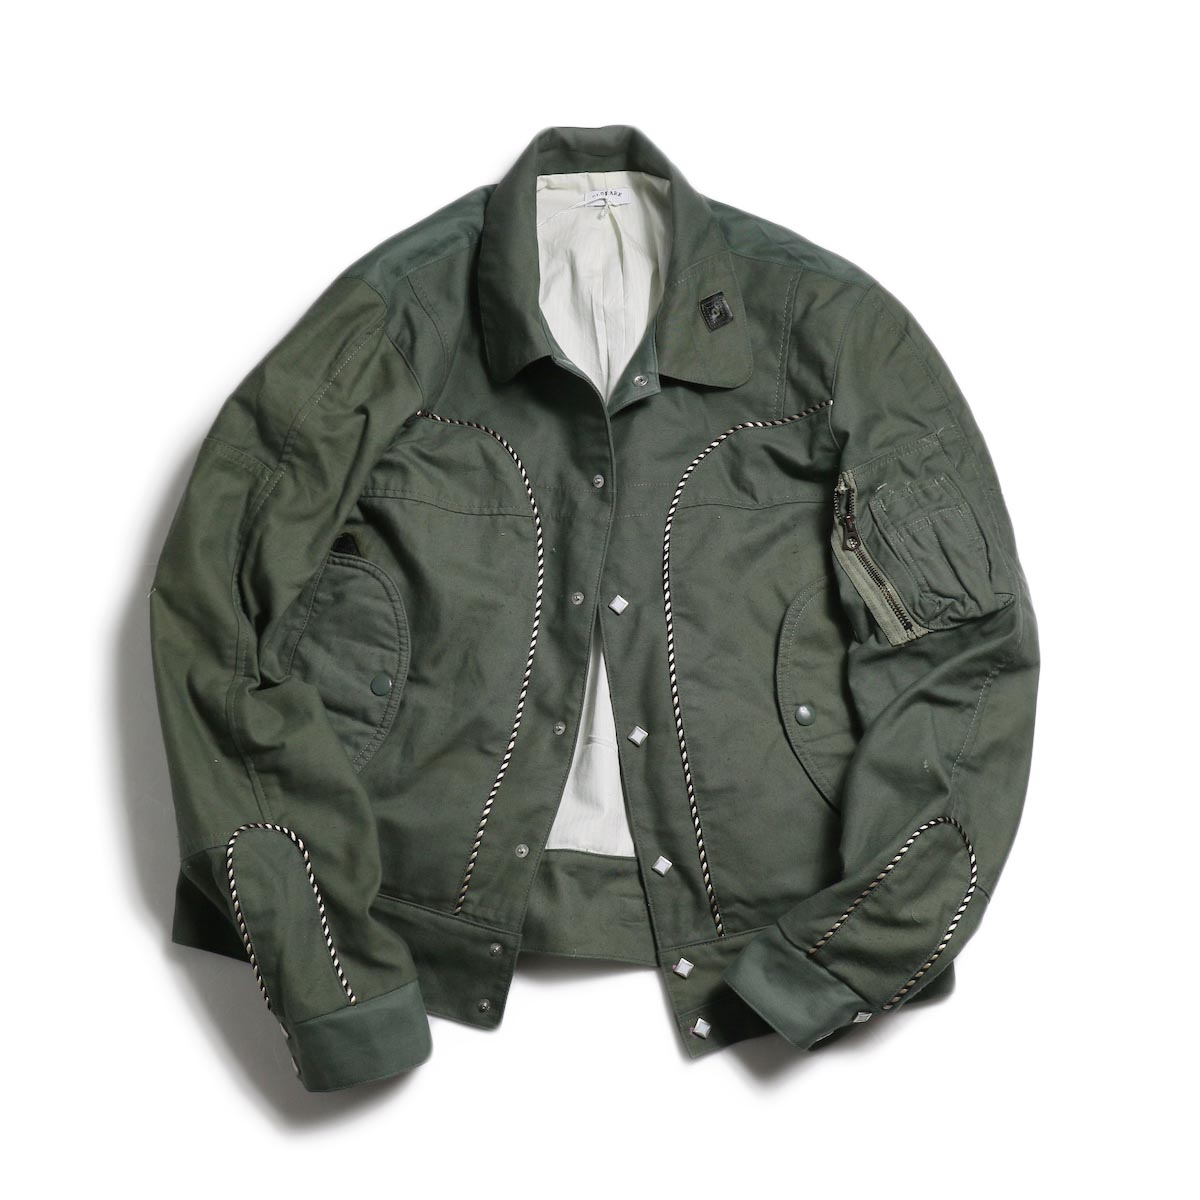 OLD PARK / WESTERN JACKET MILITARY